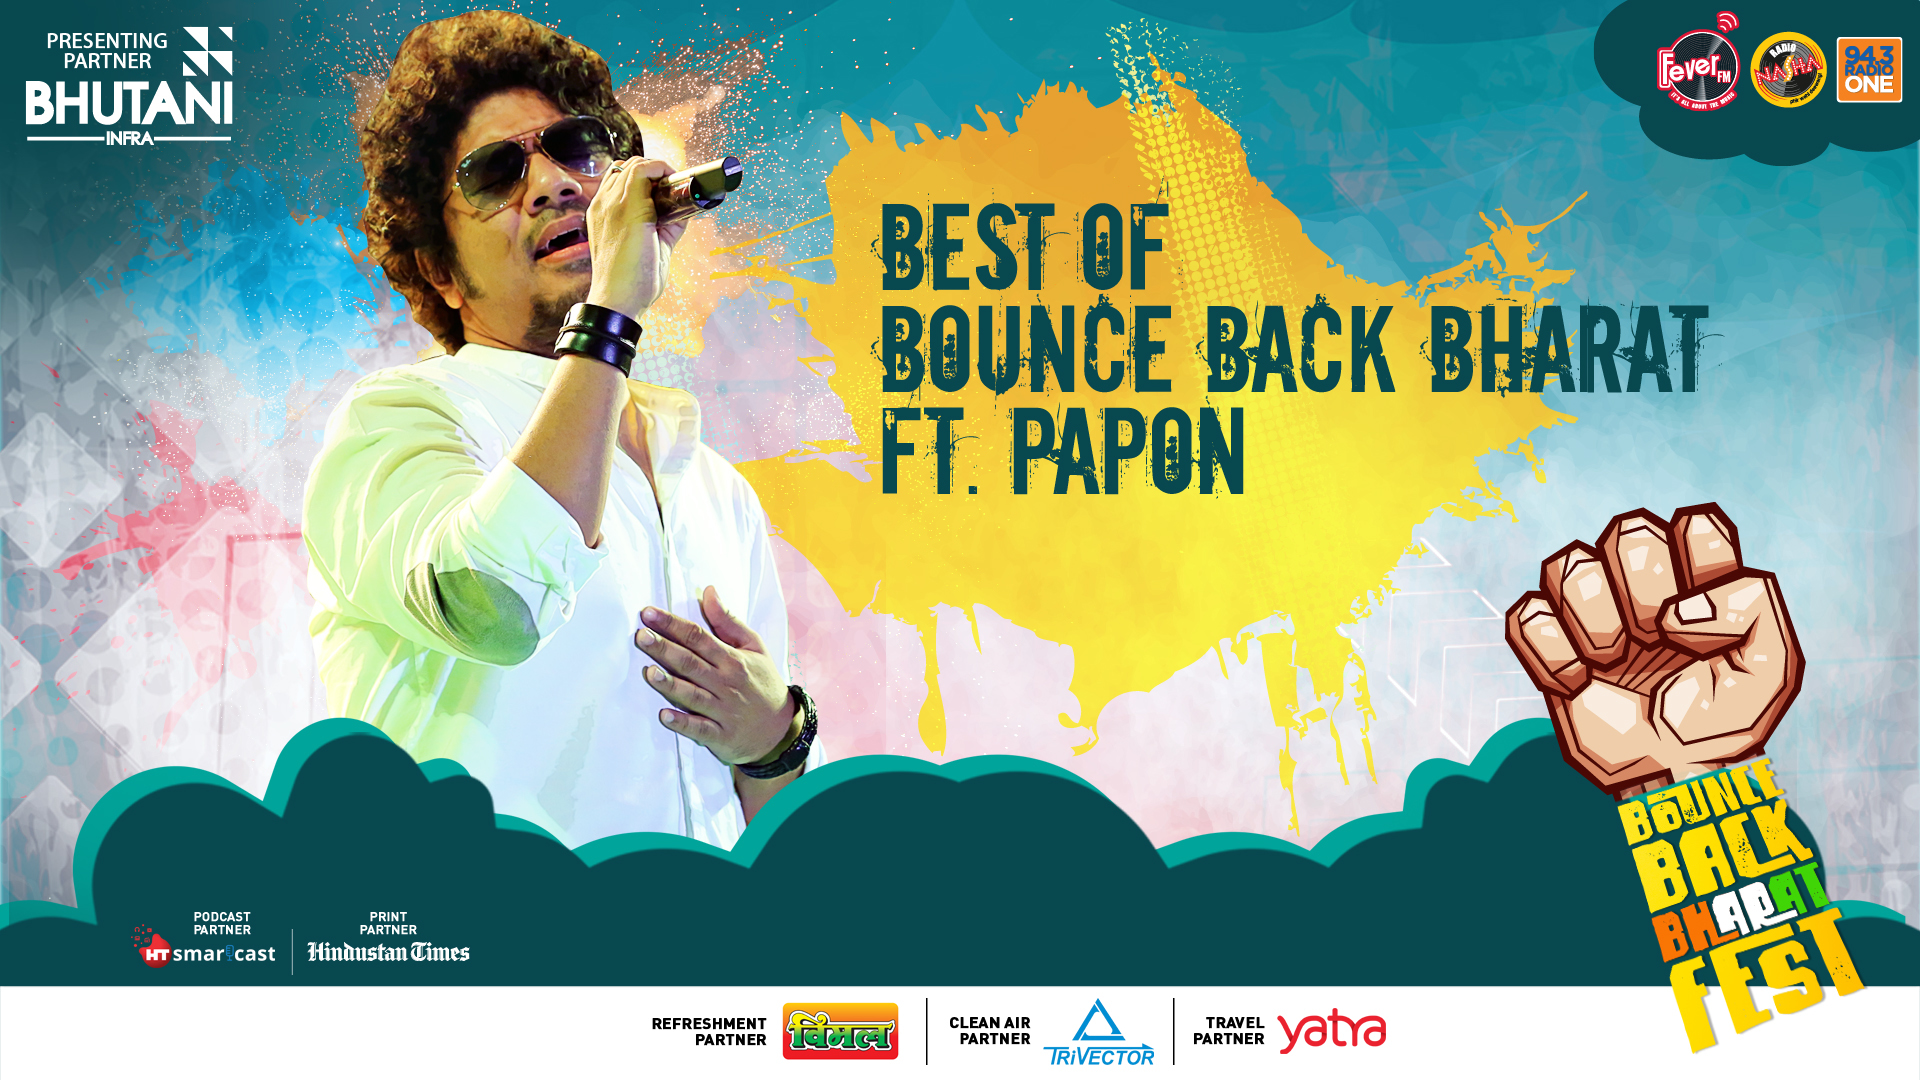 Papon at bounce back bharat